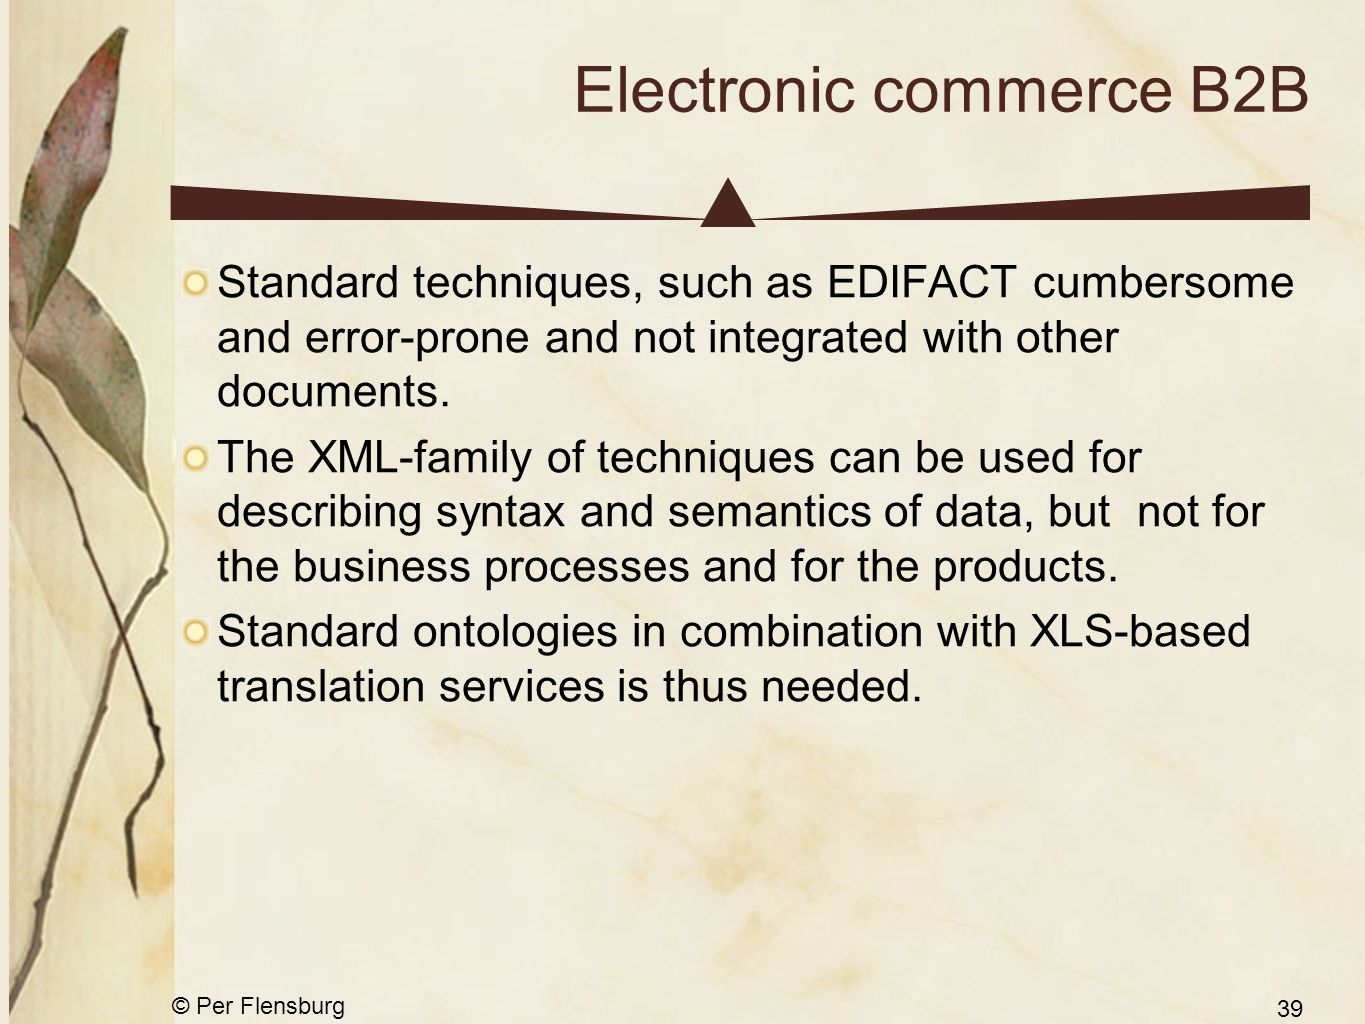 © Per Flensburg 39 Electronic commerce B2B Standard techniques, such as EDIFACT cumbersome and error-prone and not integrated with other documents.